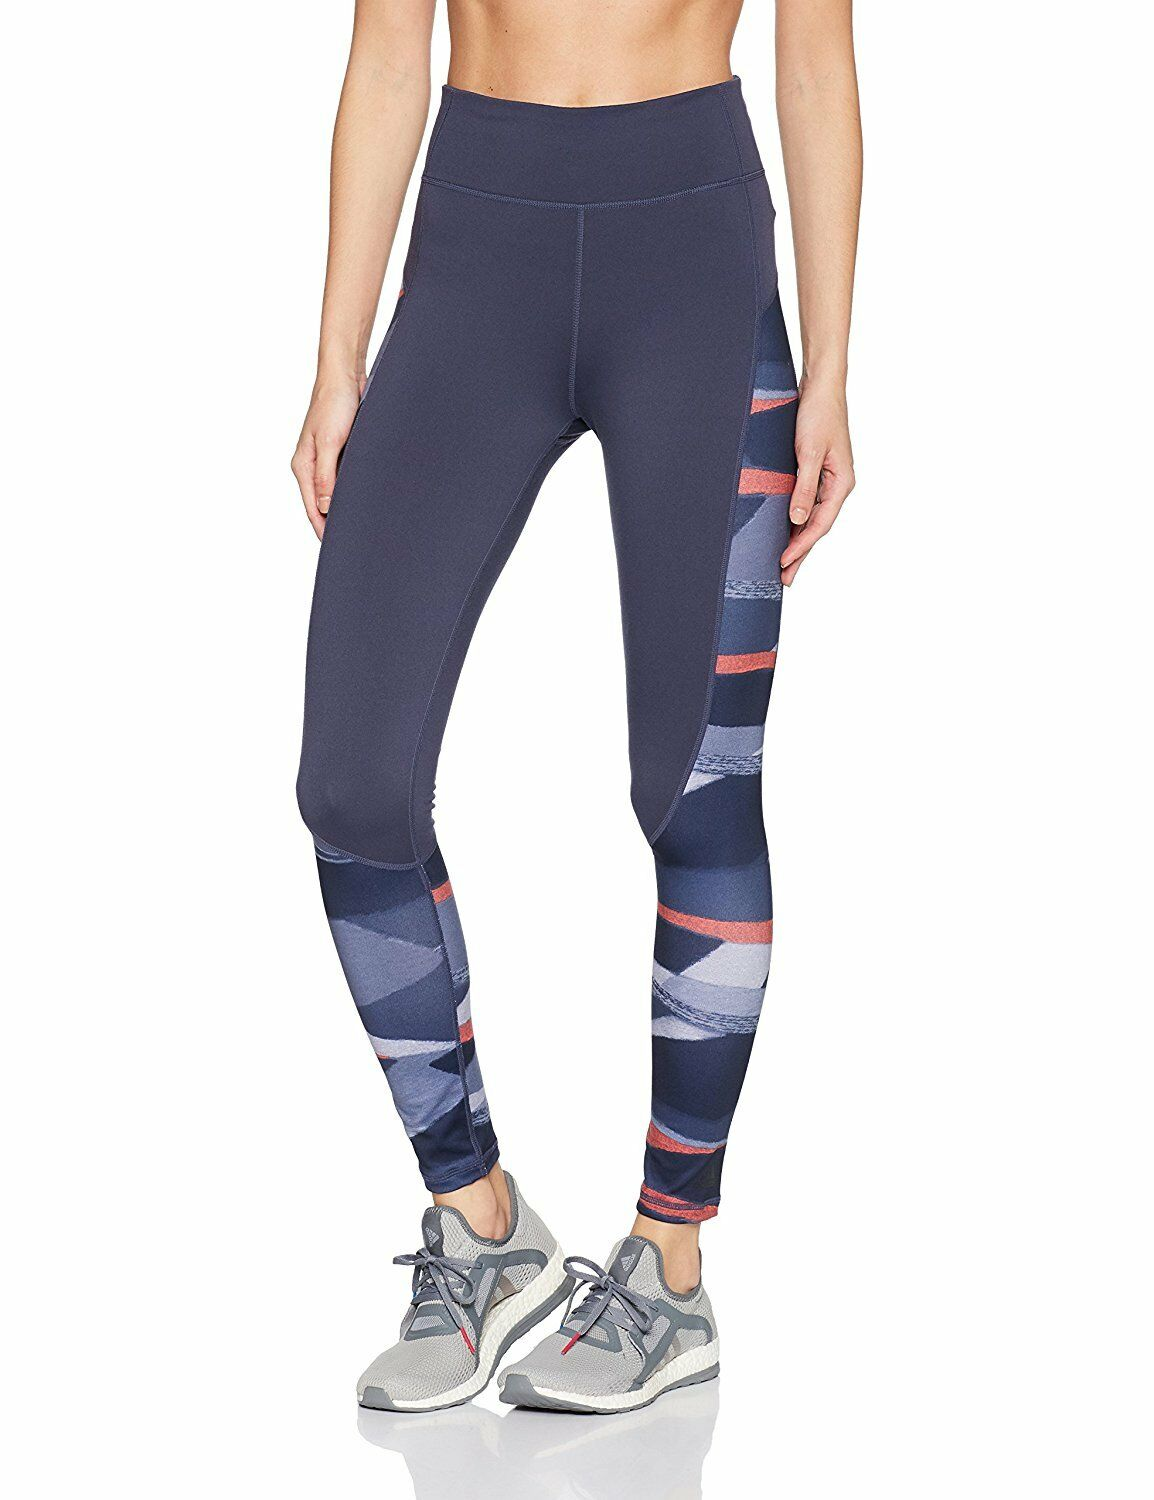 Adidas High Rise Long Printed Leggings bluee BQ5337 NEW